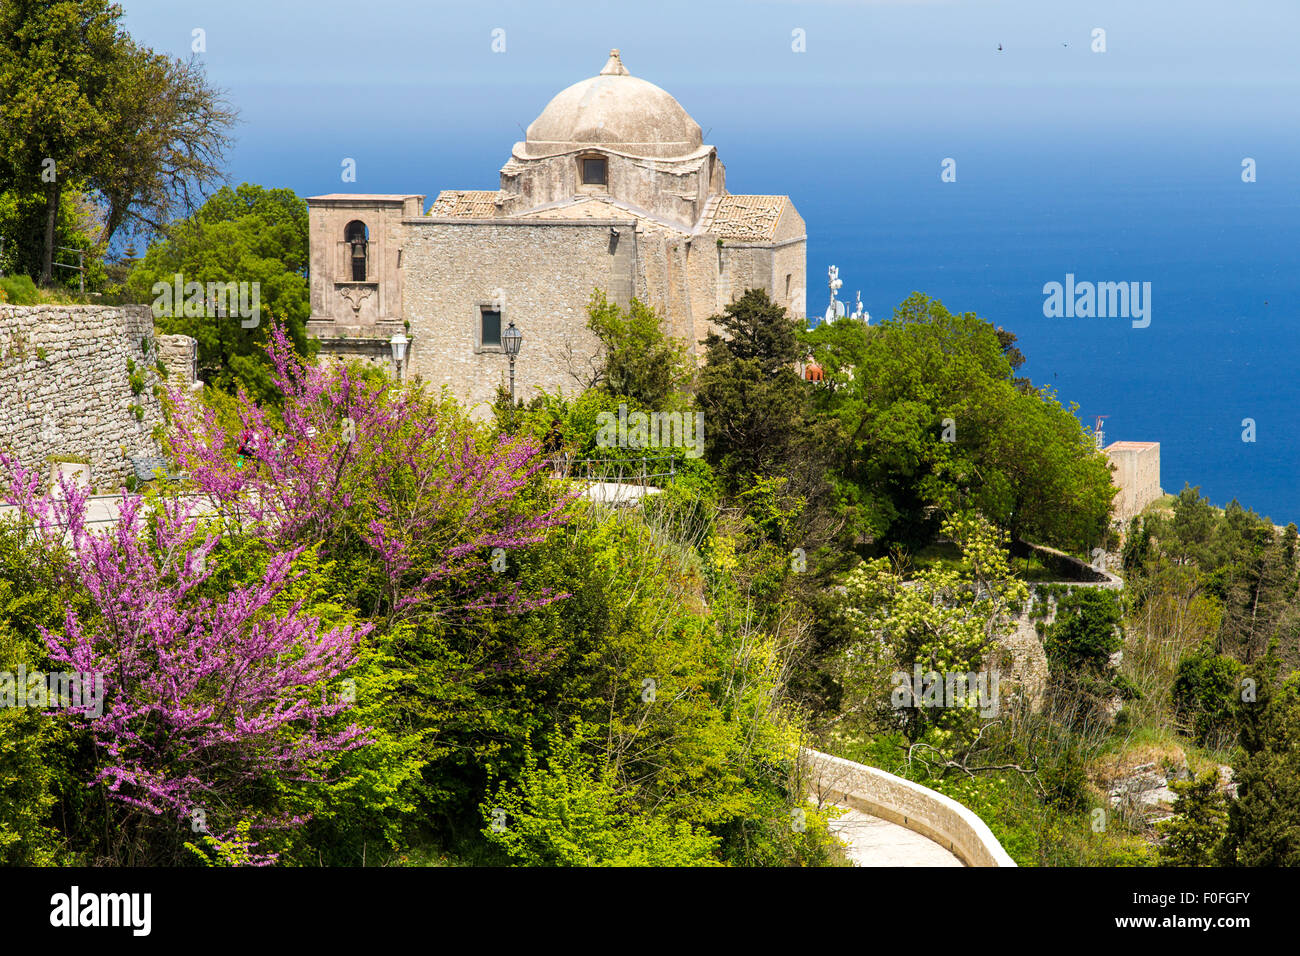 A view on historical Church of Giovanni in Erice, Sicily, Italy - Stock Image